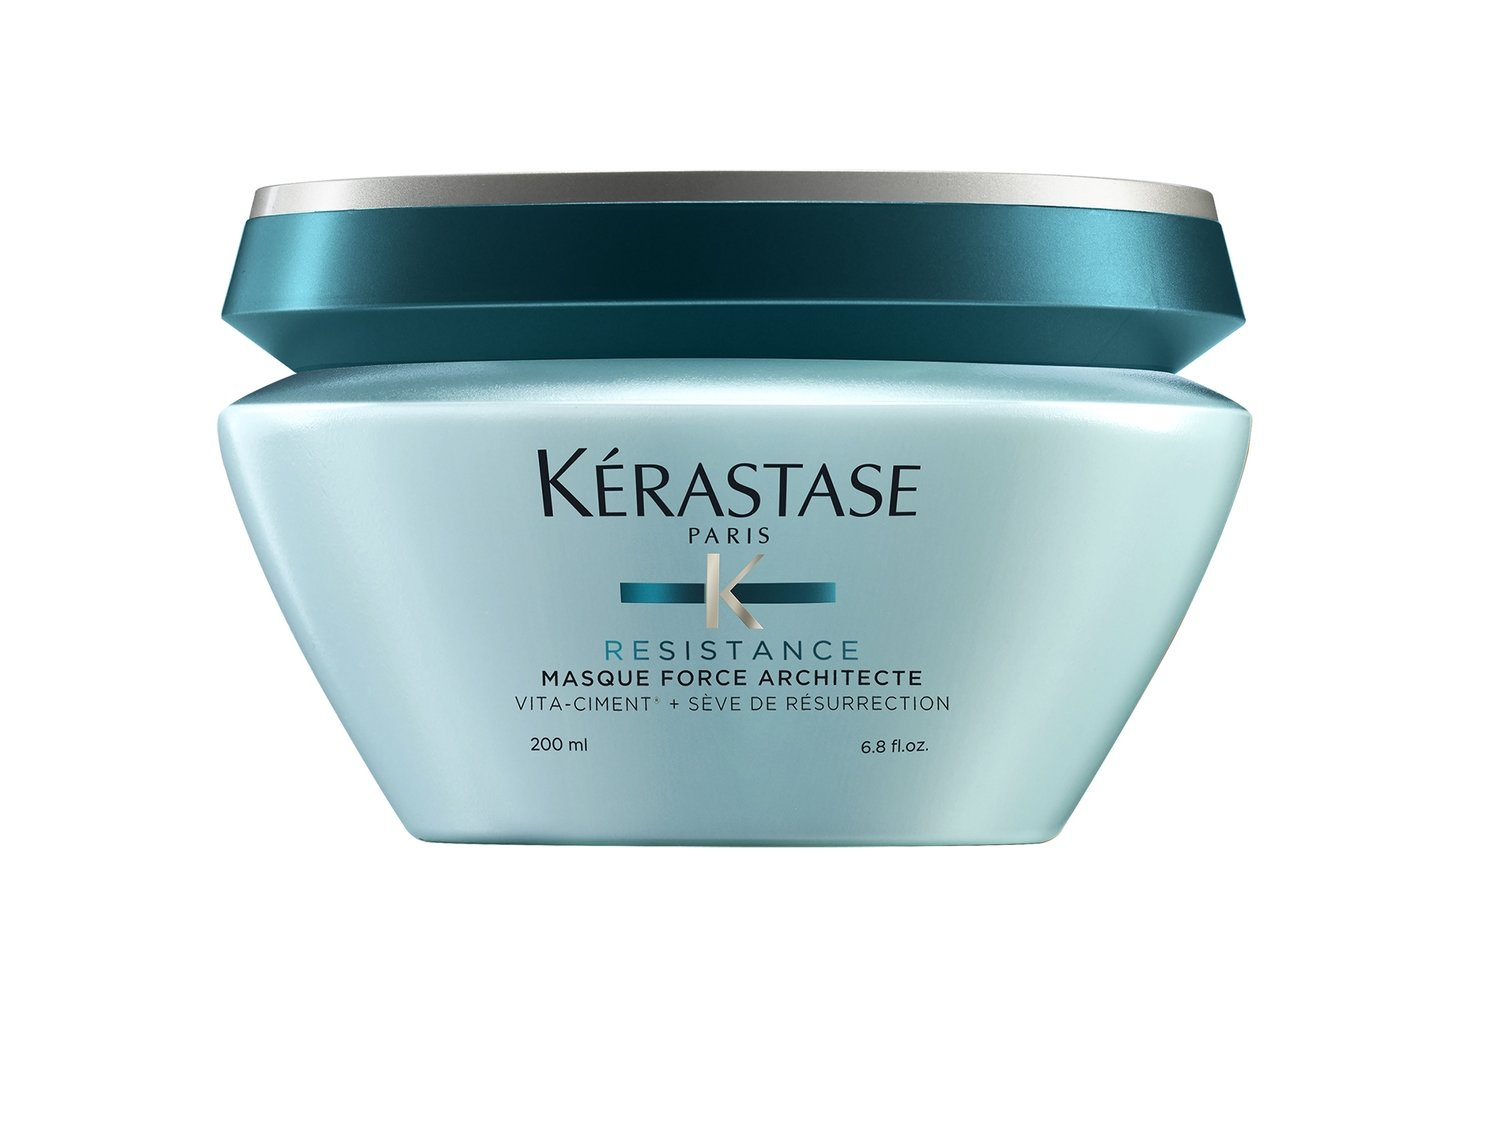 Kérastase Masque Force Architect 200 ml